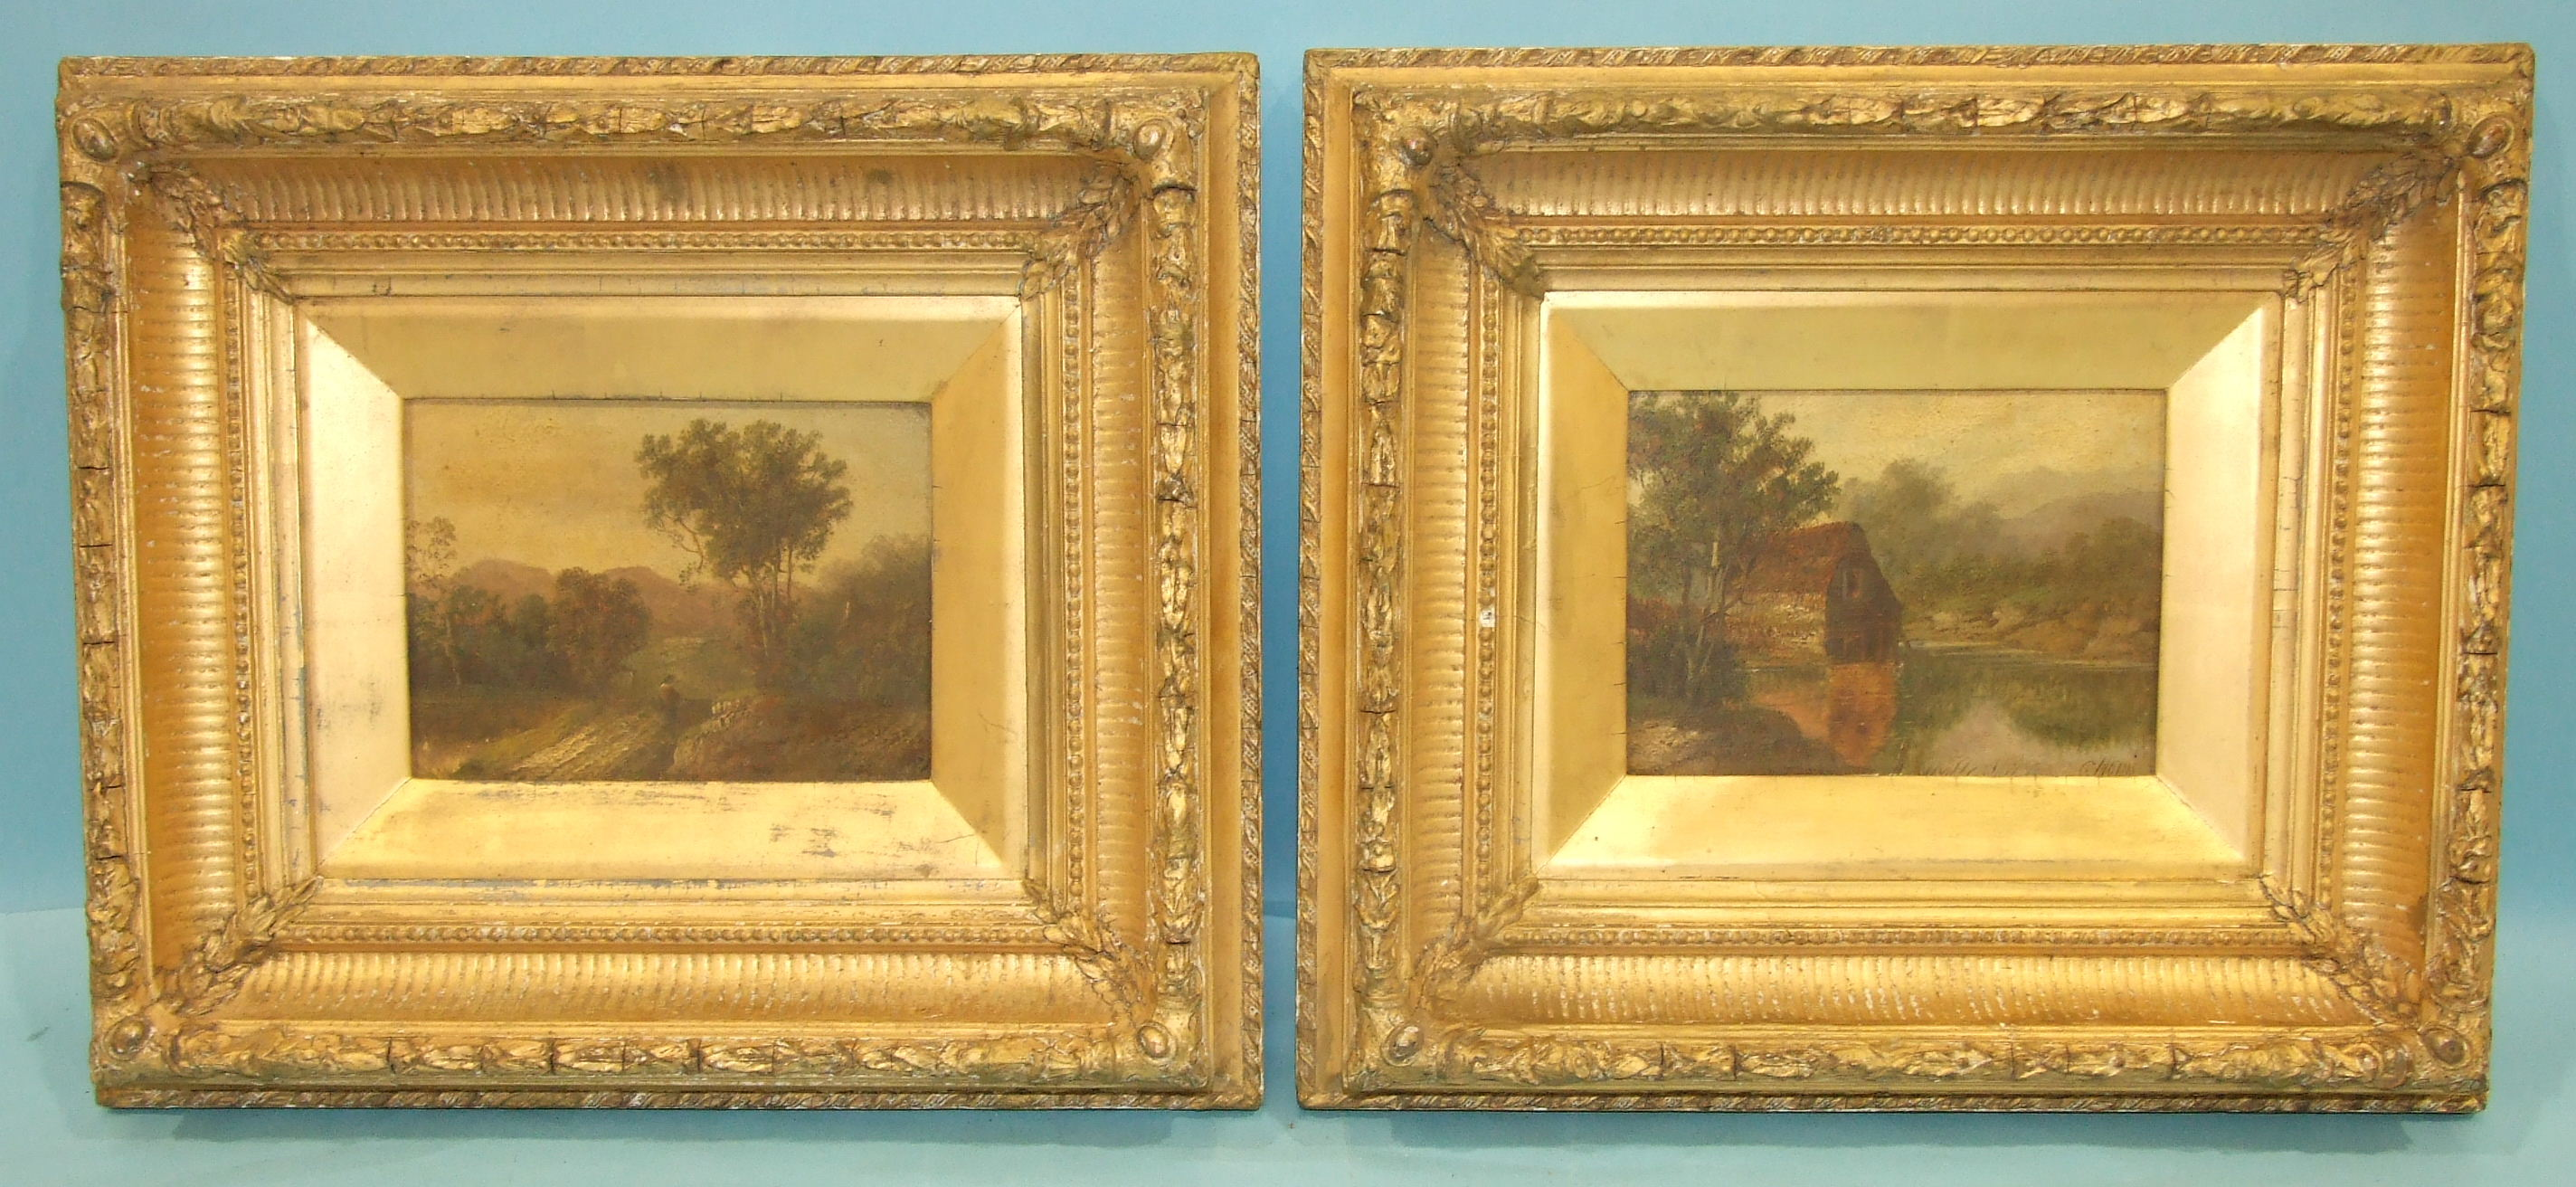 Lot 233 - G Noris?, 'Water Mill', oil on board, 14 x 19cm and a companion, a pair, in gilt gesso frames and